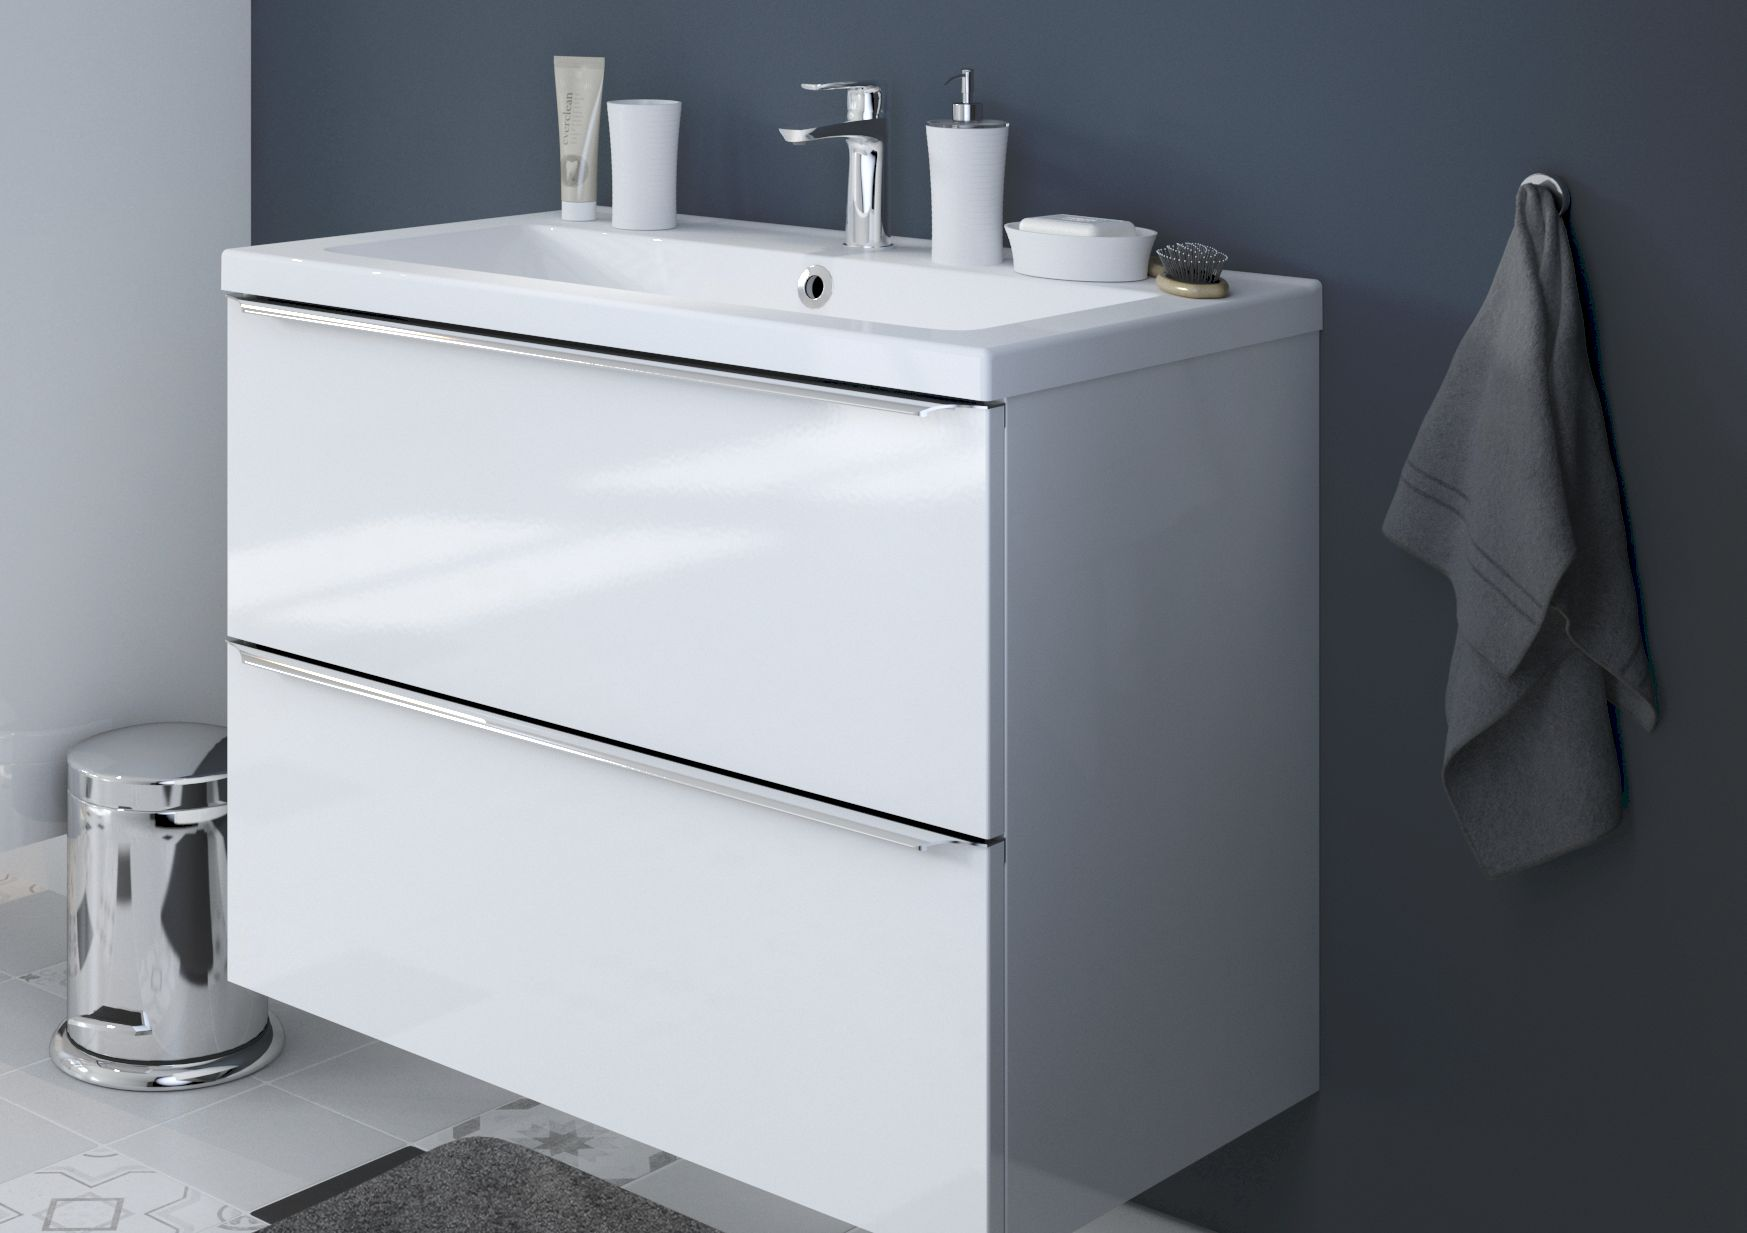 Amazing Vetro White Gloss Fitted Bathroom Furniture  Roper Rhodes